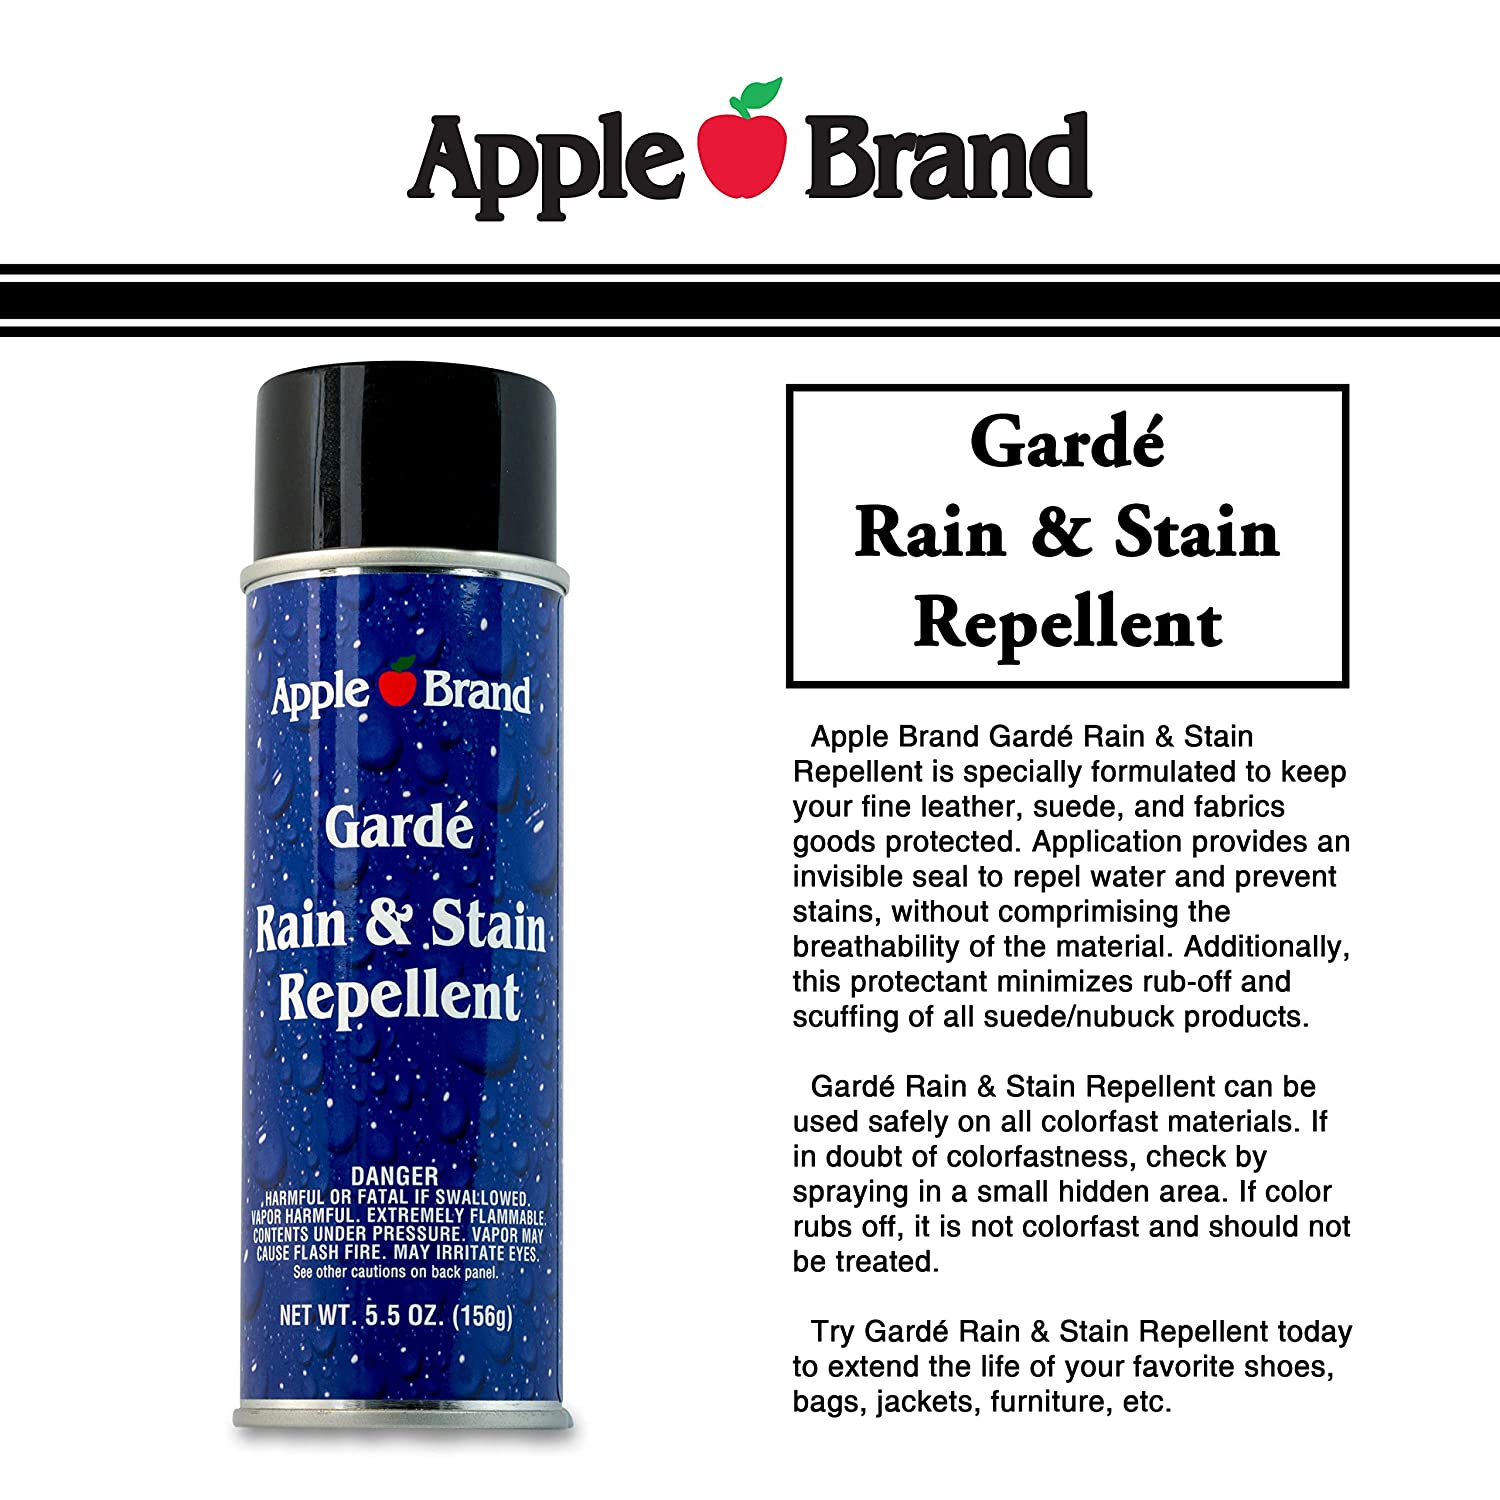 8a036e2f95a Amazon.com: Apple Brand Garde Rain & Stain Water Repellent - Protector  Spray For Handbags, Purses, Shoes, Boots, Accessories, Furniture - Won't  Alter Color ...